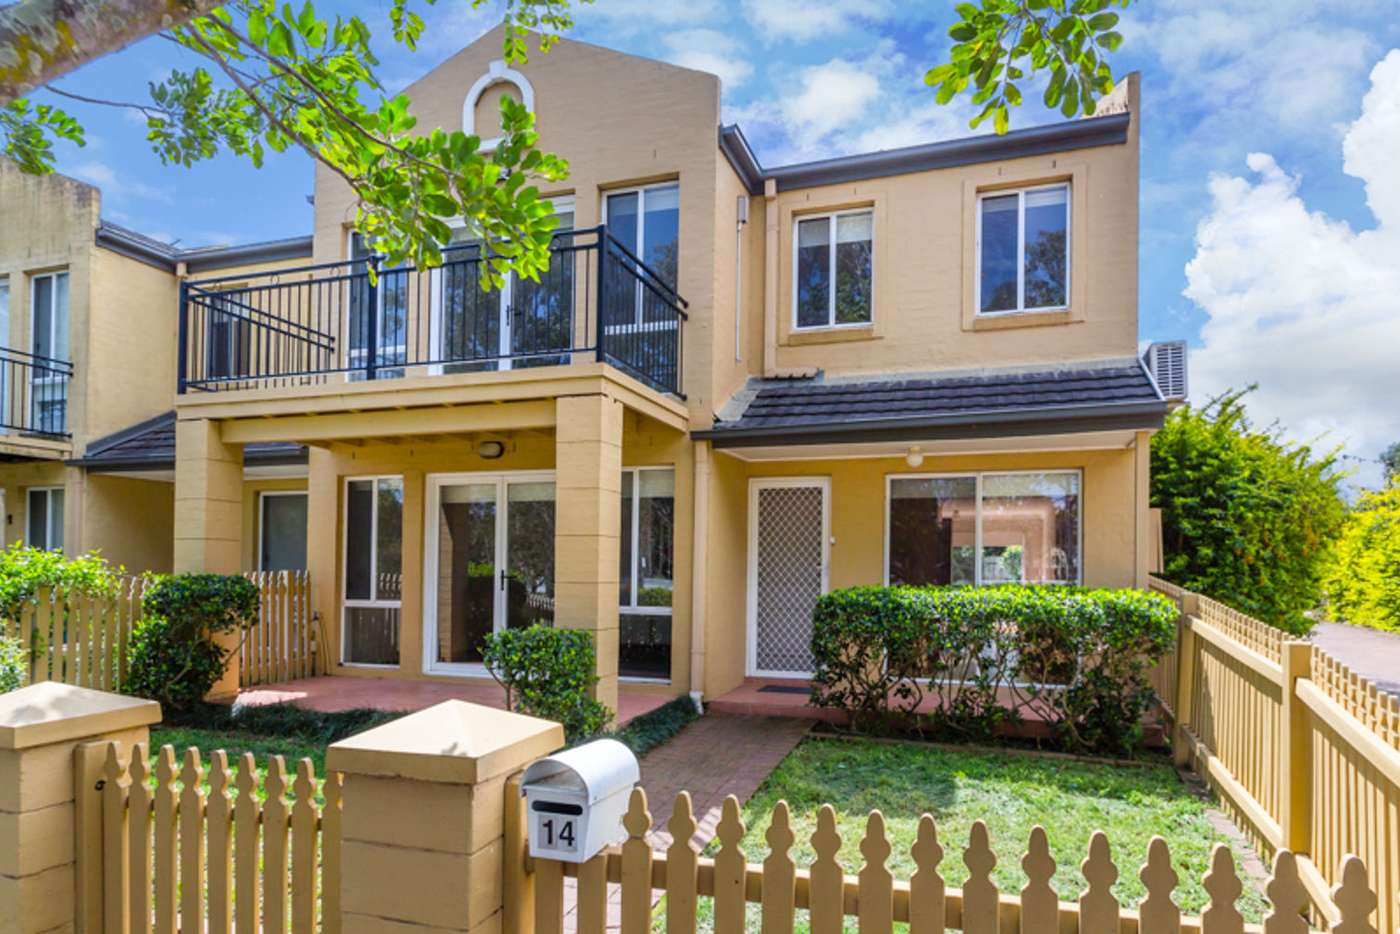 Main view of Homely house listing, 14 Noble Way, Rouse Hill NSW 2155